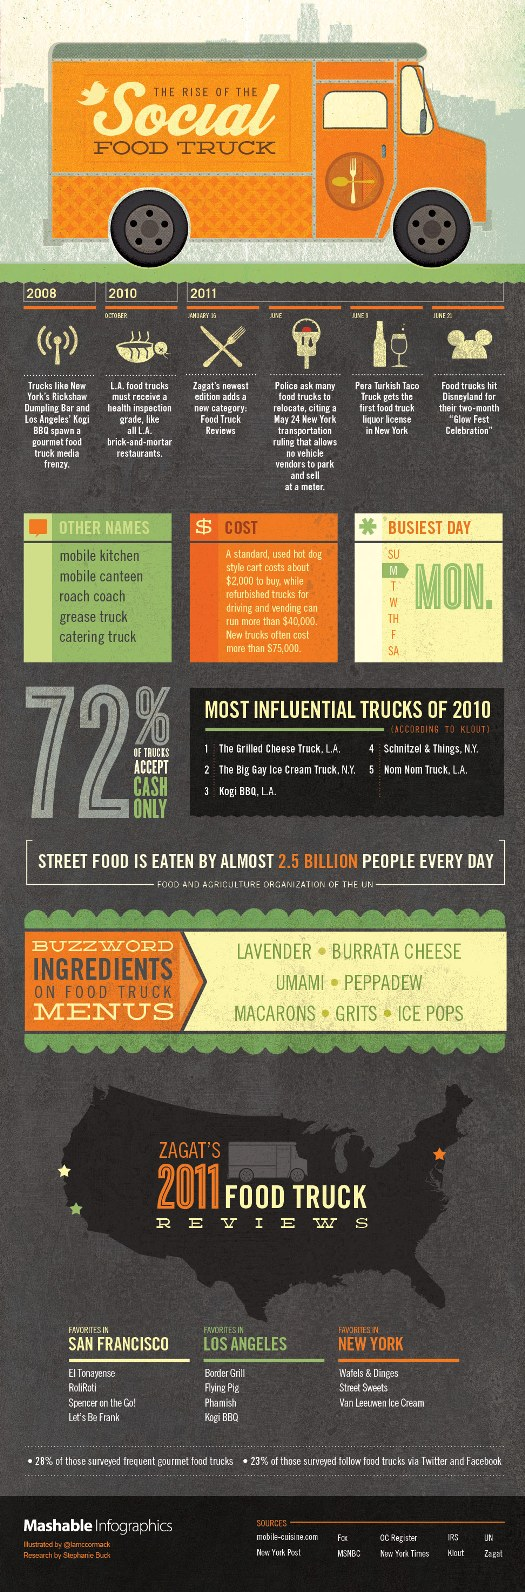 the rise of the social food truck.